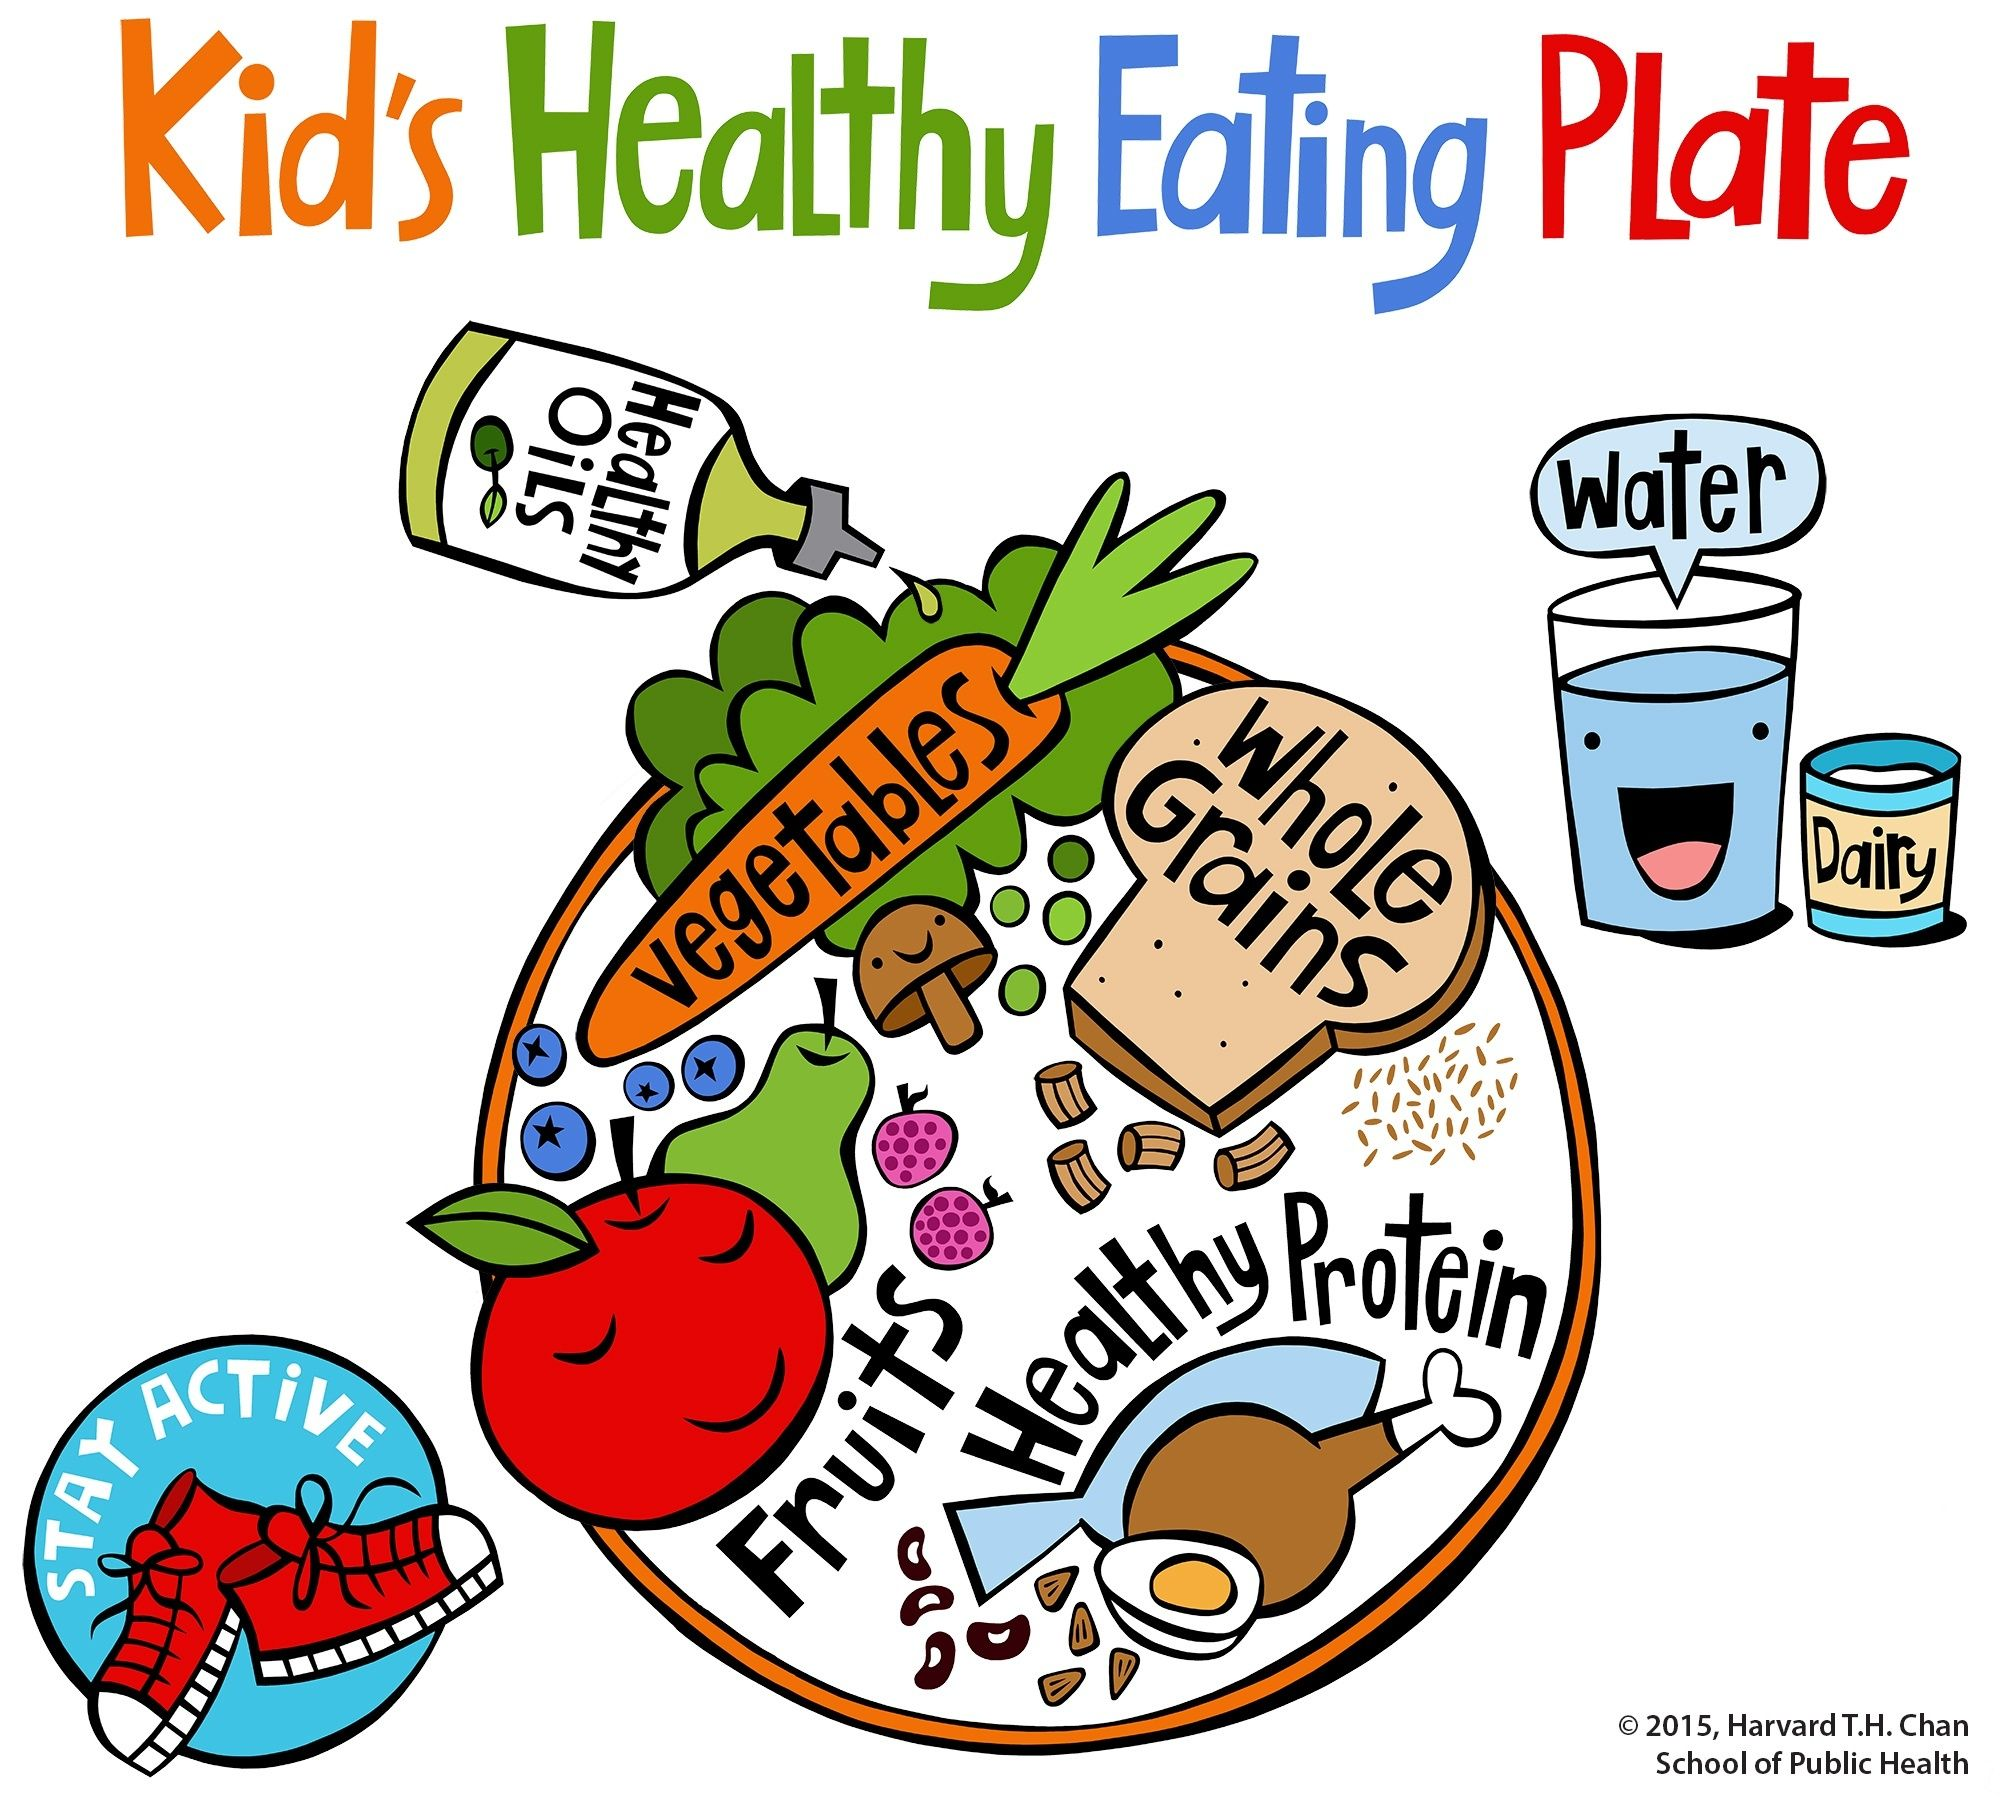 The Kid's Healthy Eating Plate is a visual guide to help